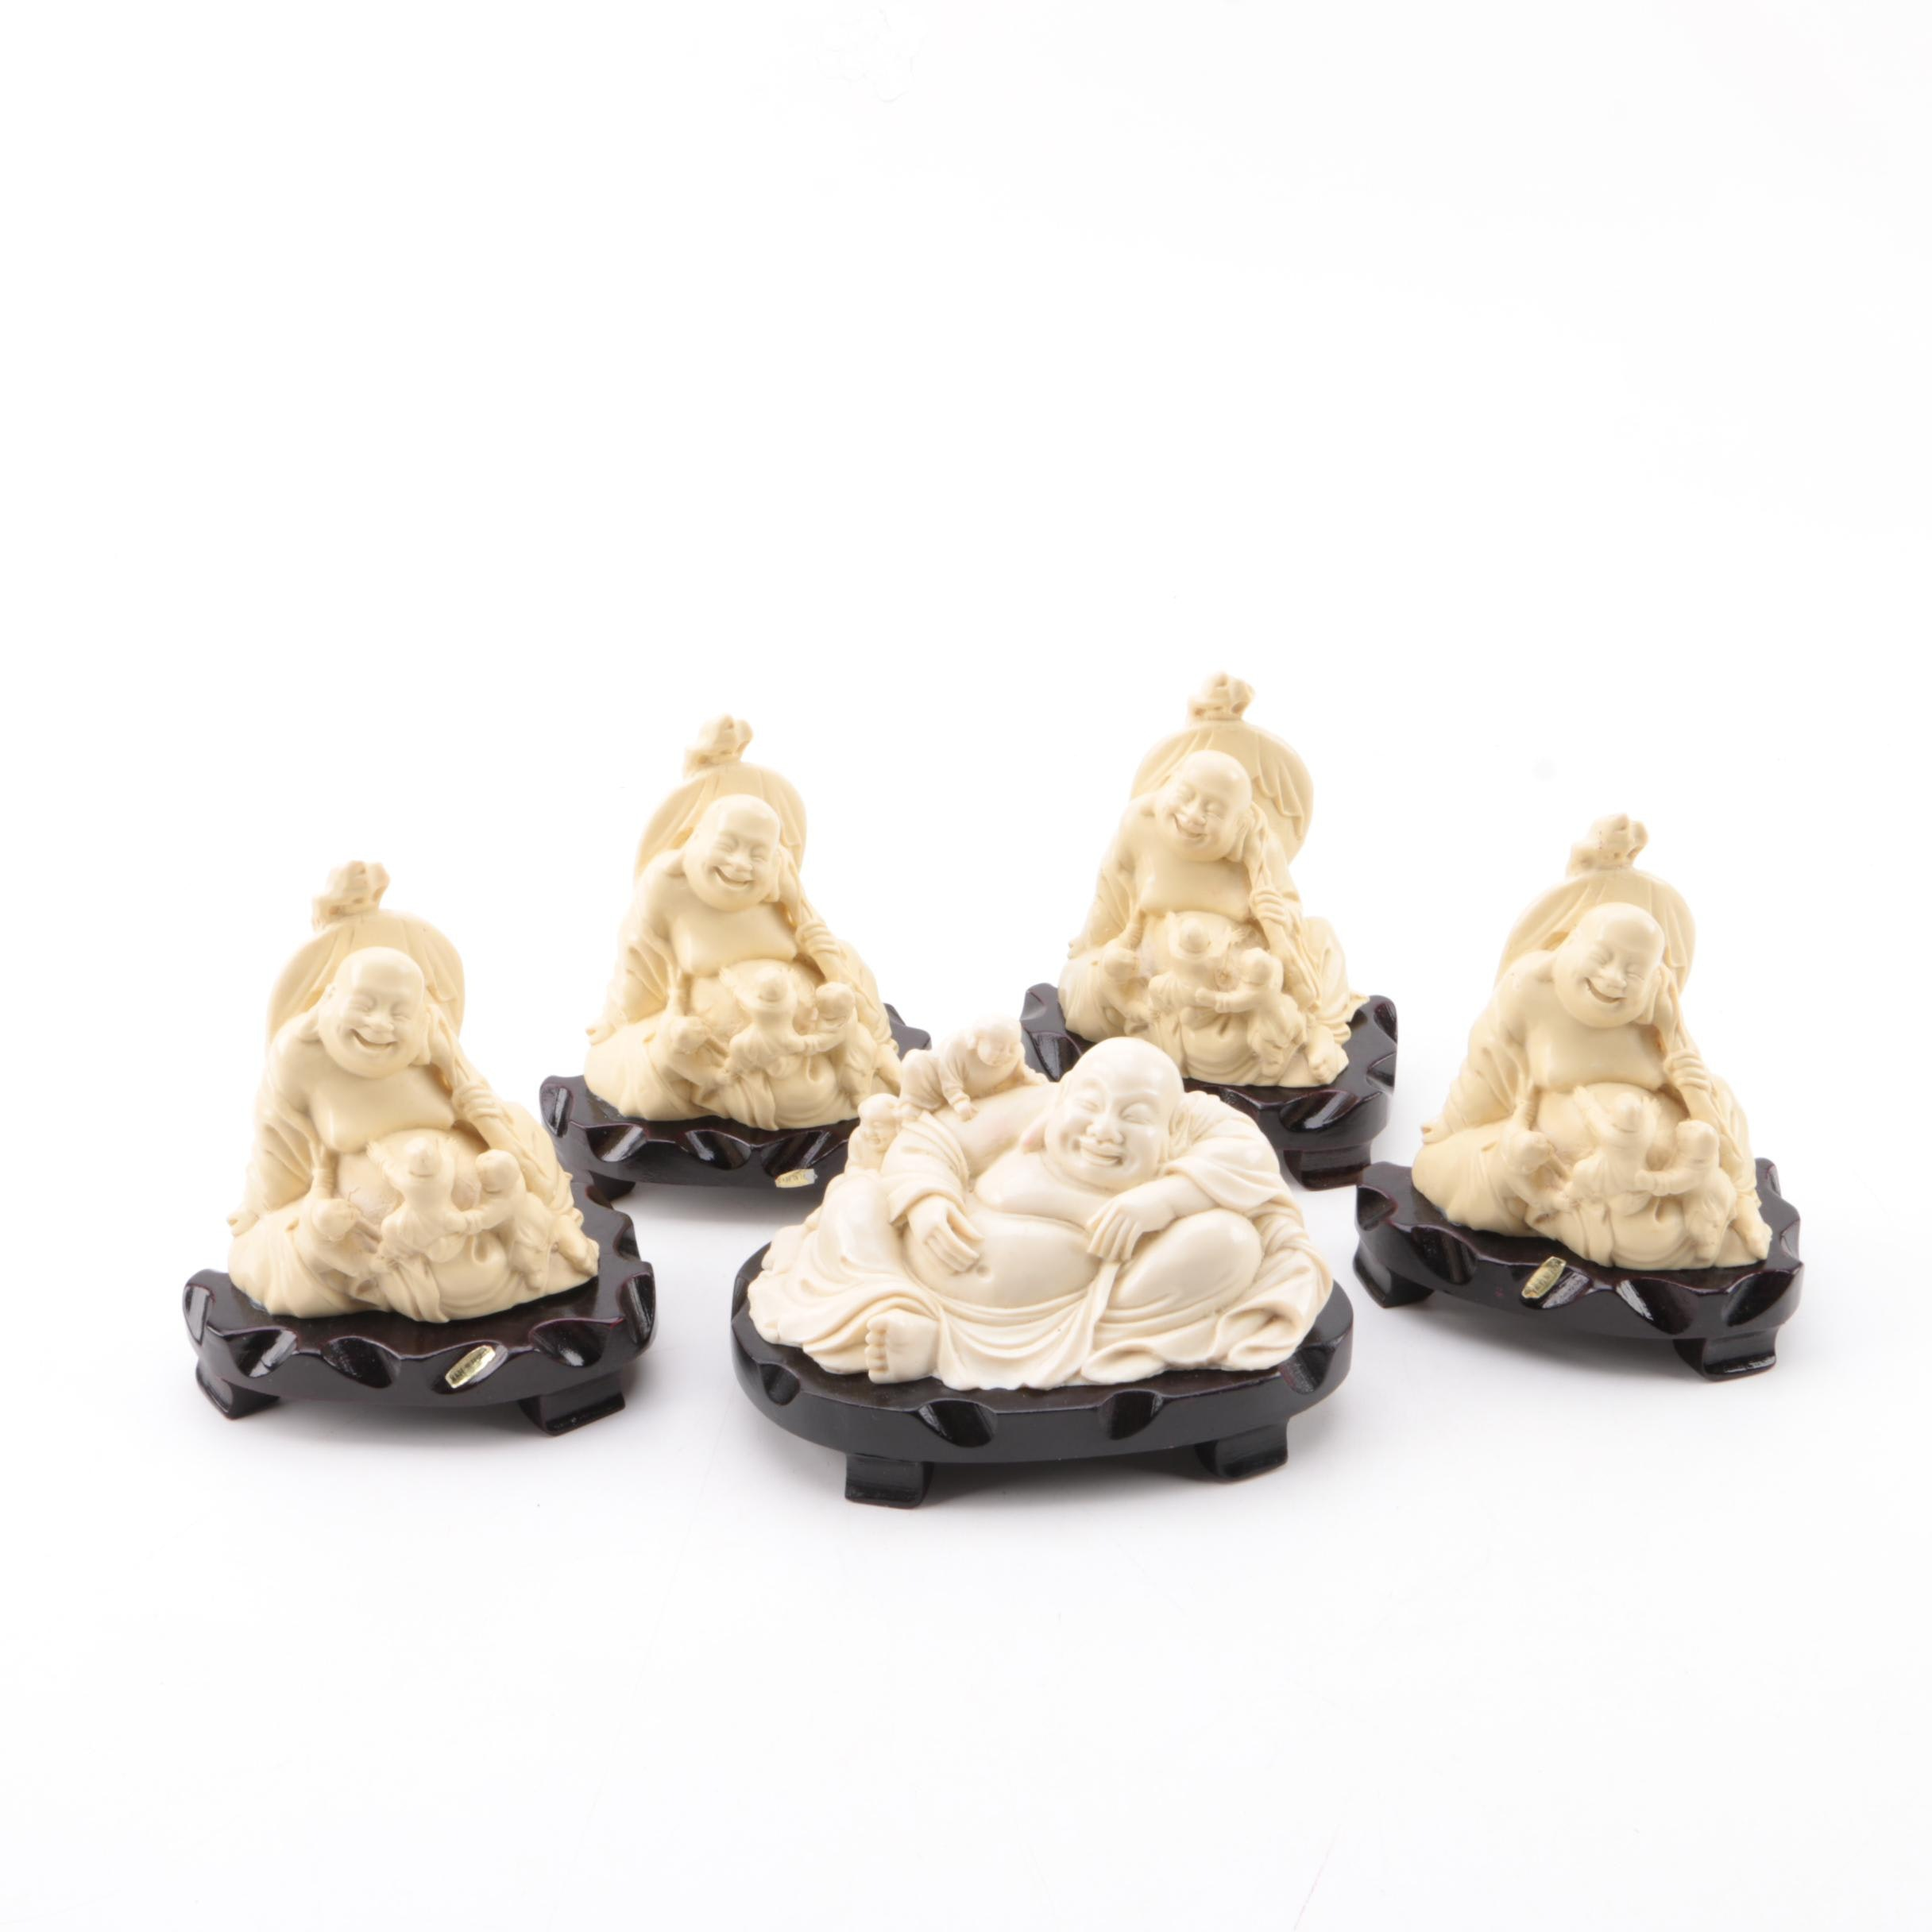 Chinese Resin Budai Figurines with Stands